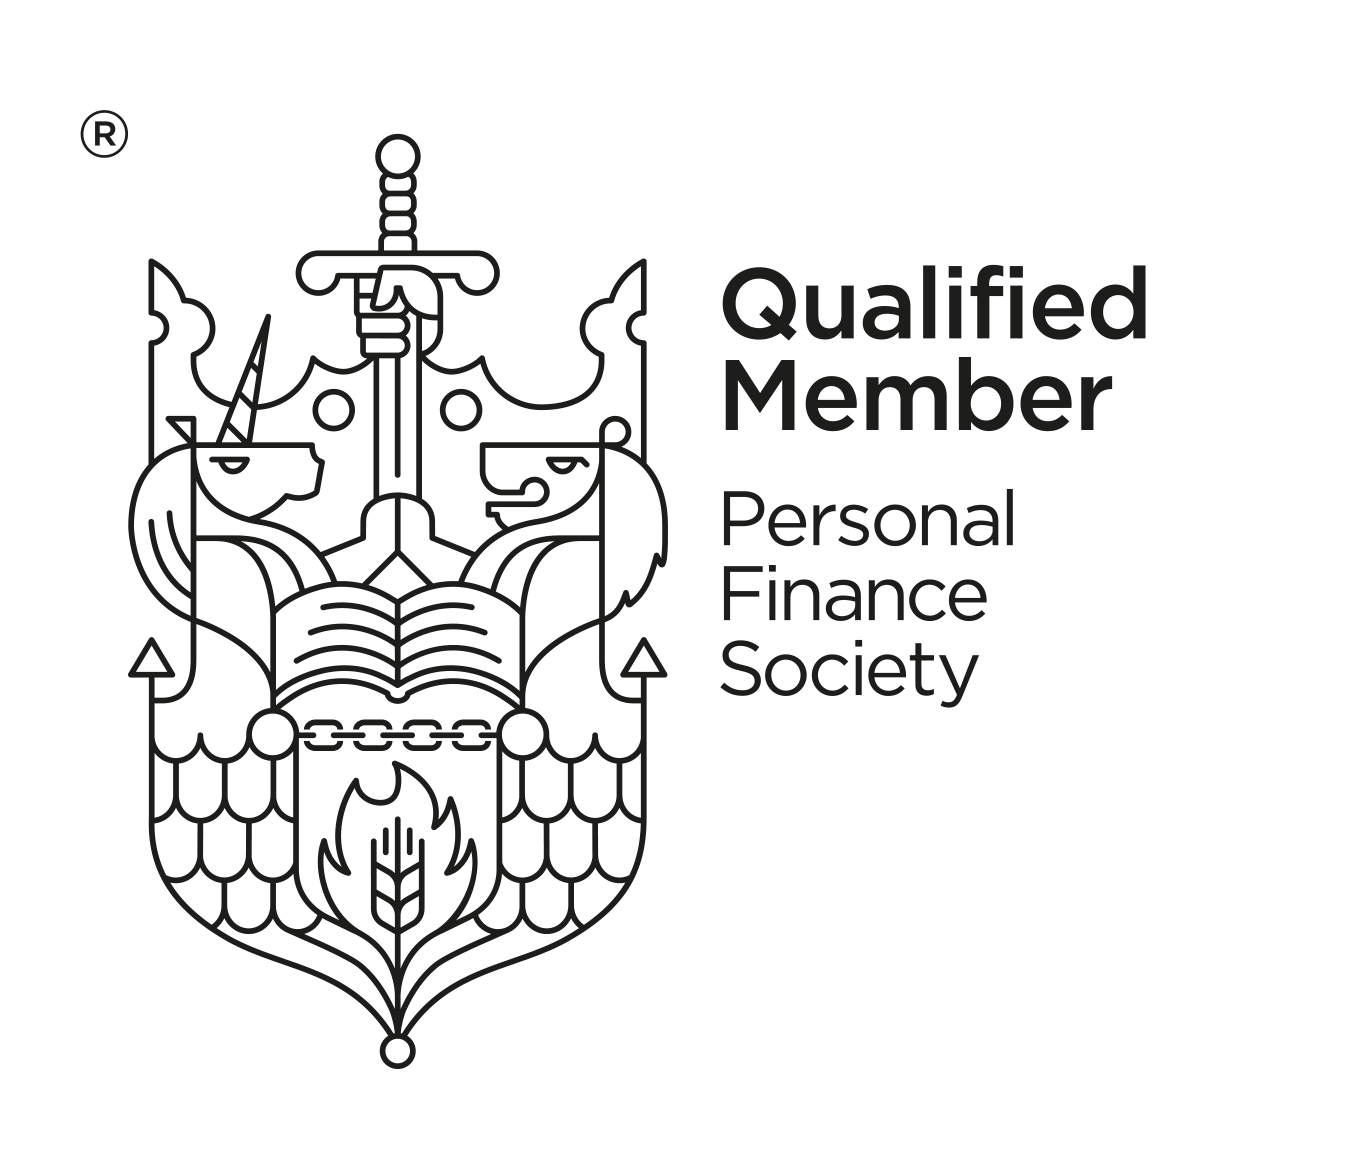 Qualified Member of the Personal Finance Society